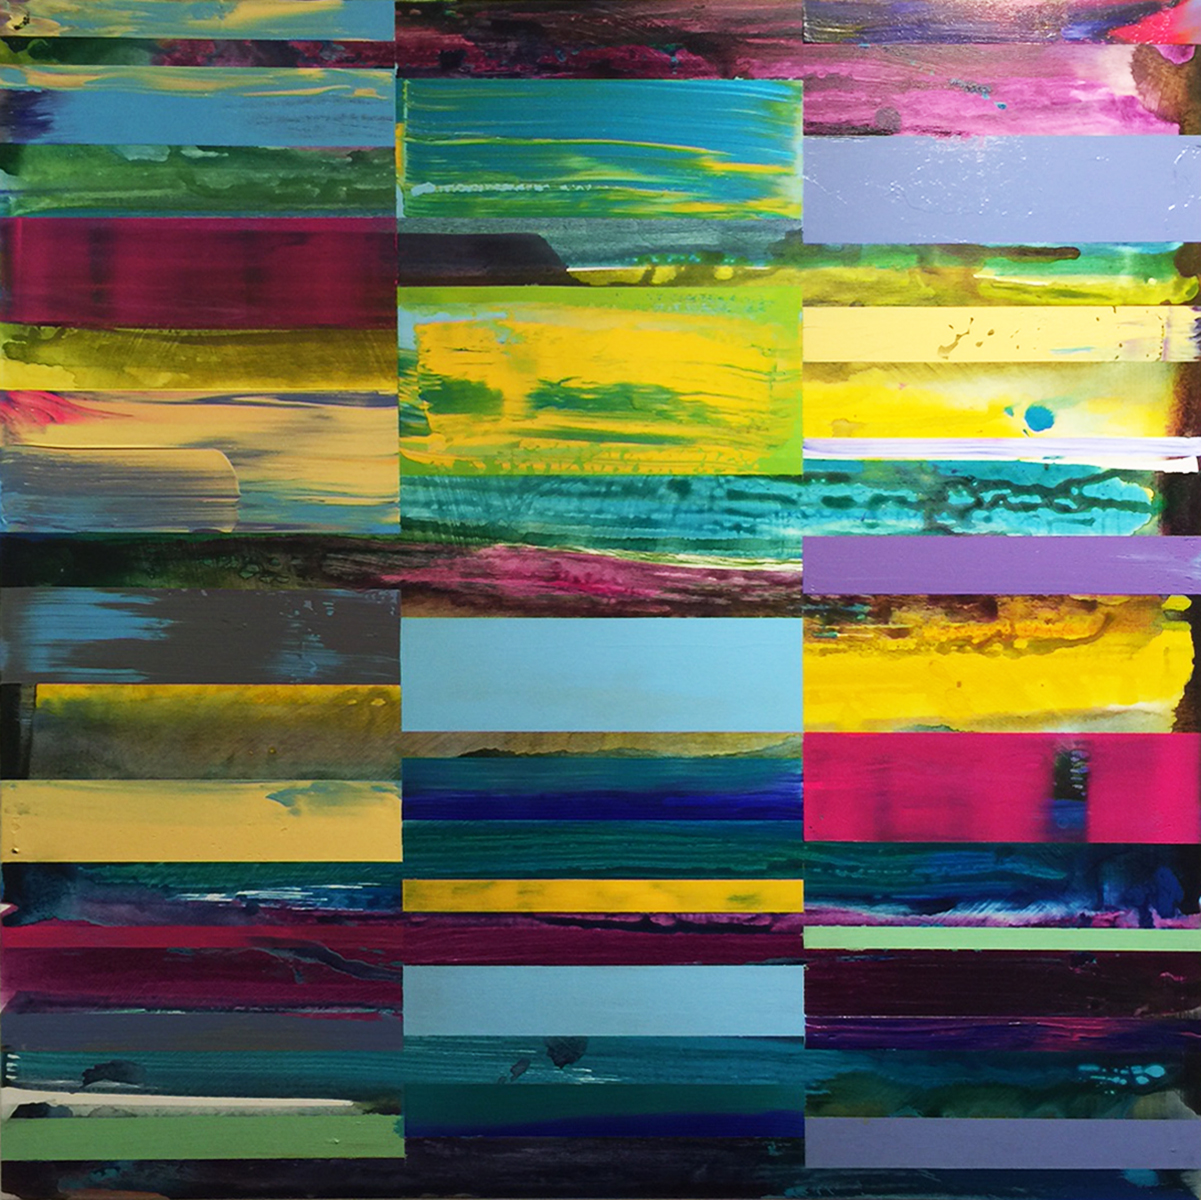 DNA Landscape_36 x 36 inches_June 2017_commissioned by Cynthia Colby for office in Toronto_1200.00 plus HST each_1 of 4_A